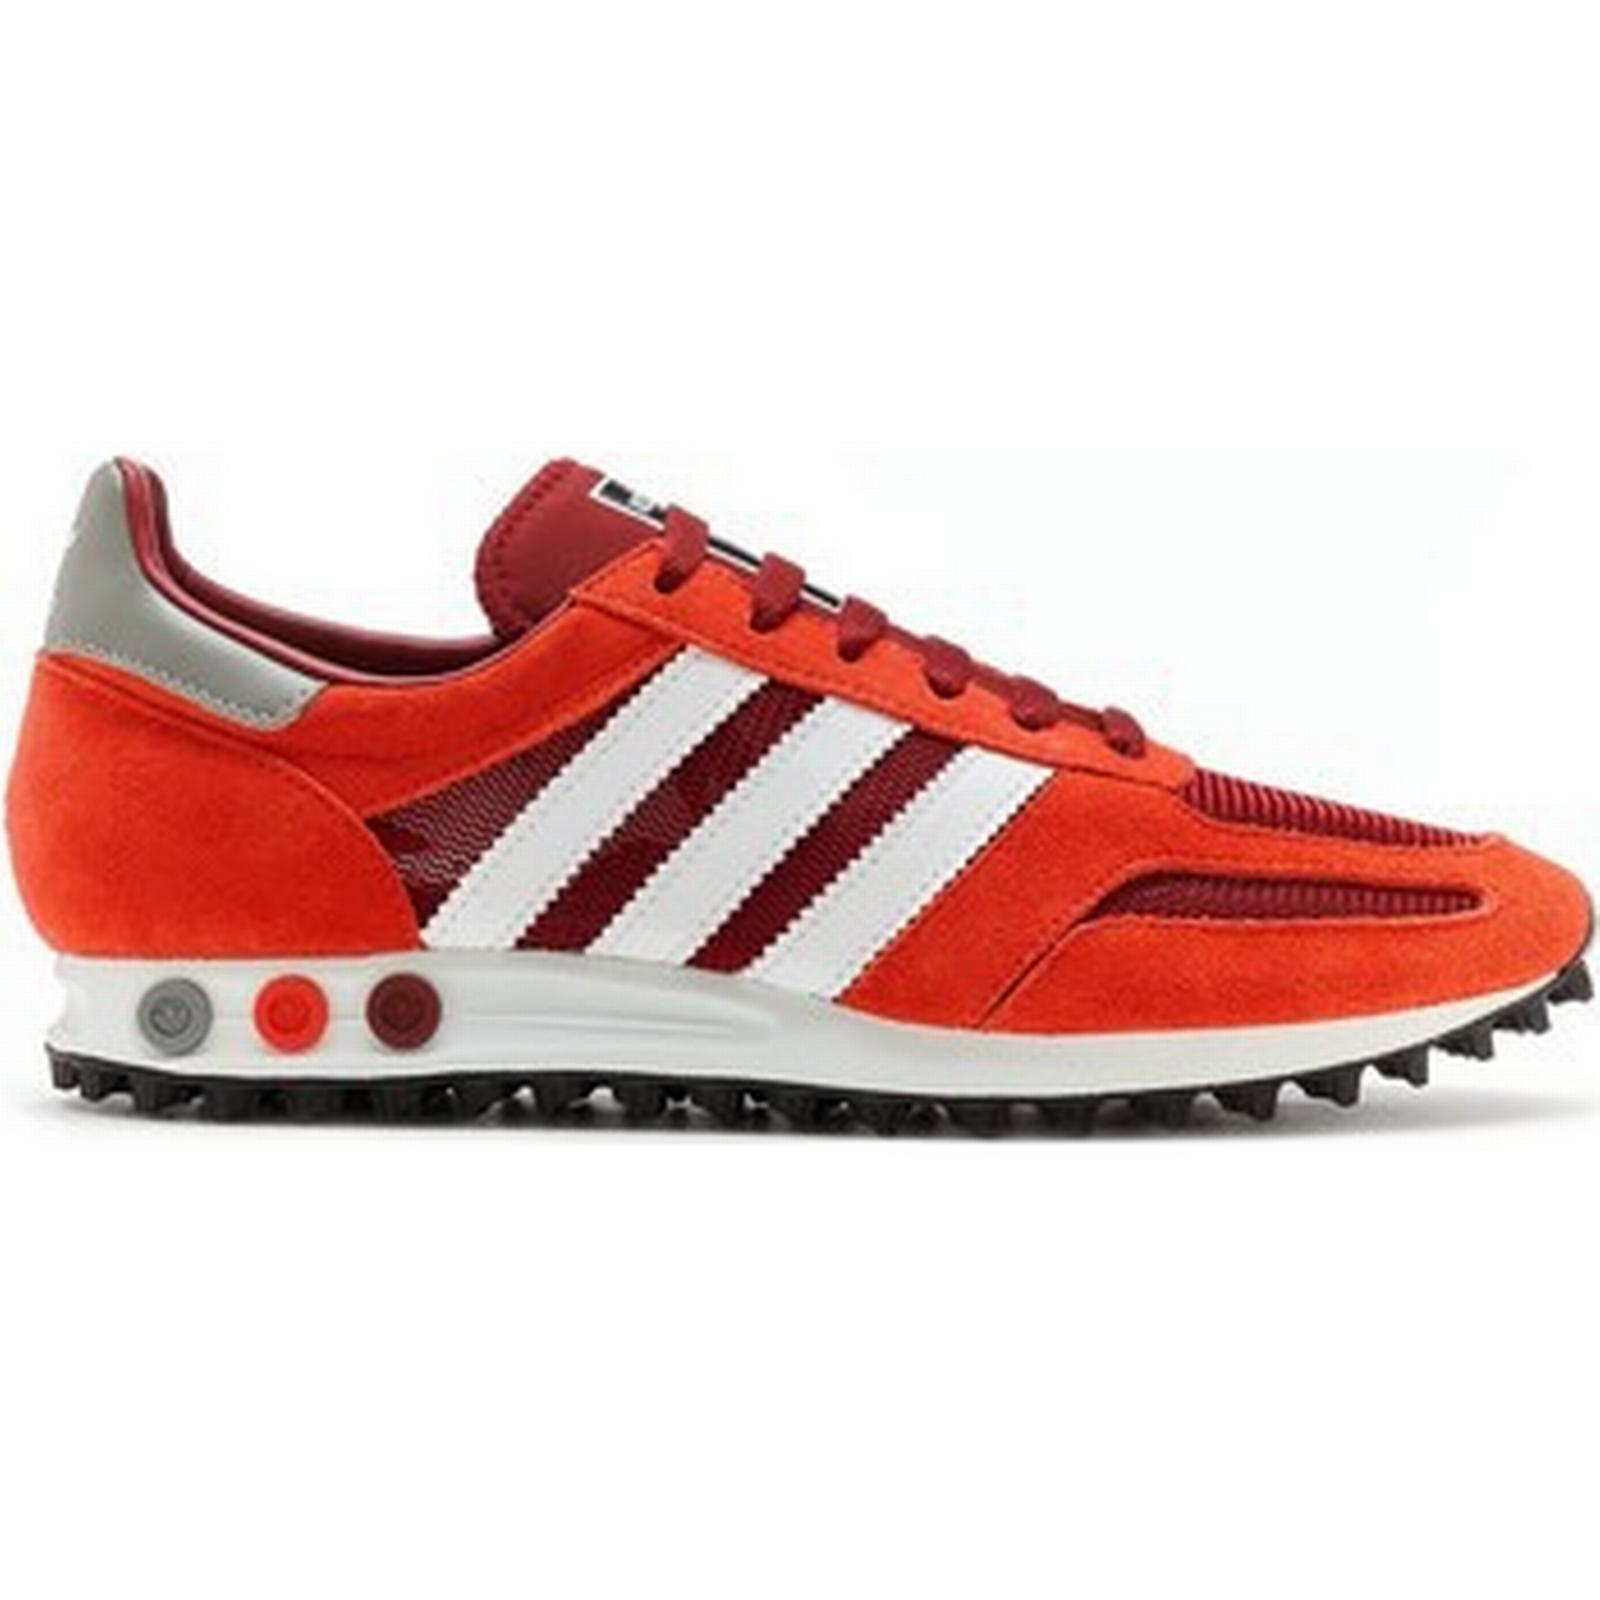 spartoo.co.uk spartoo.co.uk spartoo.co.uk adidas originaux los angeles og formateurs en bourgogne, blanc Rouge  bb hommes & #  ; s Chaussure s formateurs en rouge fff4a4